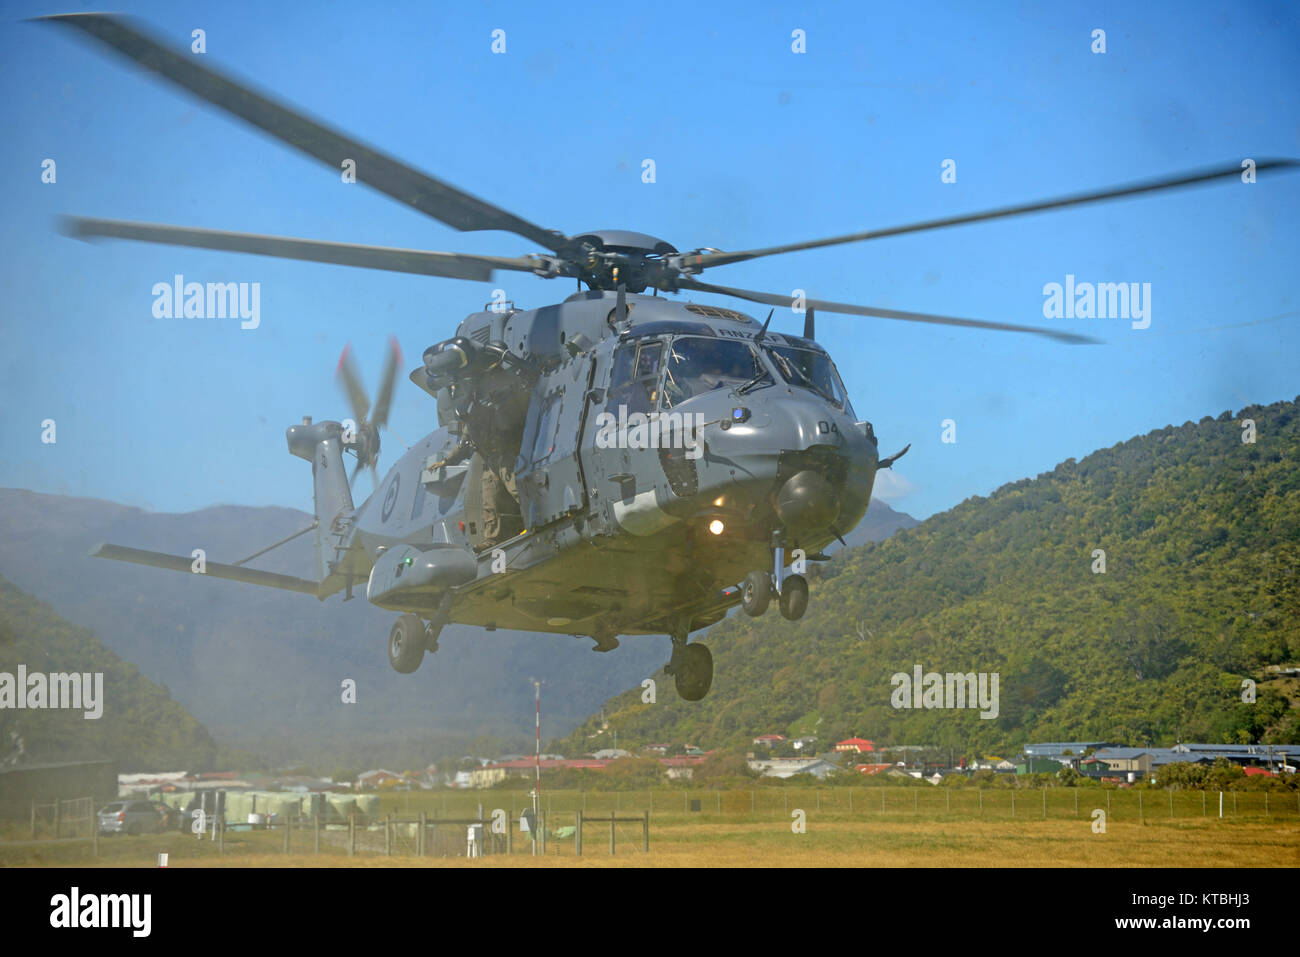 GREYMOUTH, NEW ZEALAND, NOVEMBER 18, 2017: Dust and flying debris obscure an Air Force NH90 helicopter taking off - Stock Image